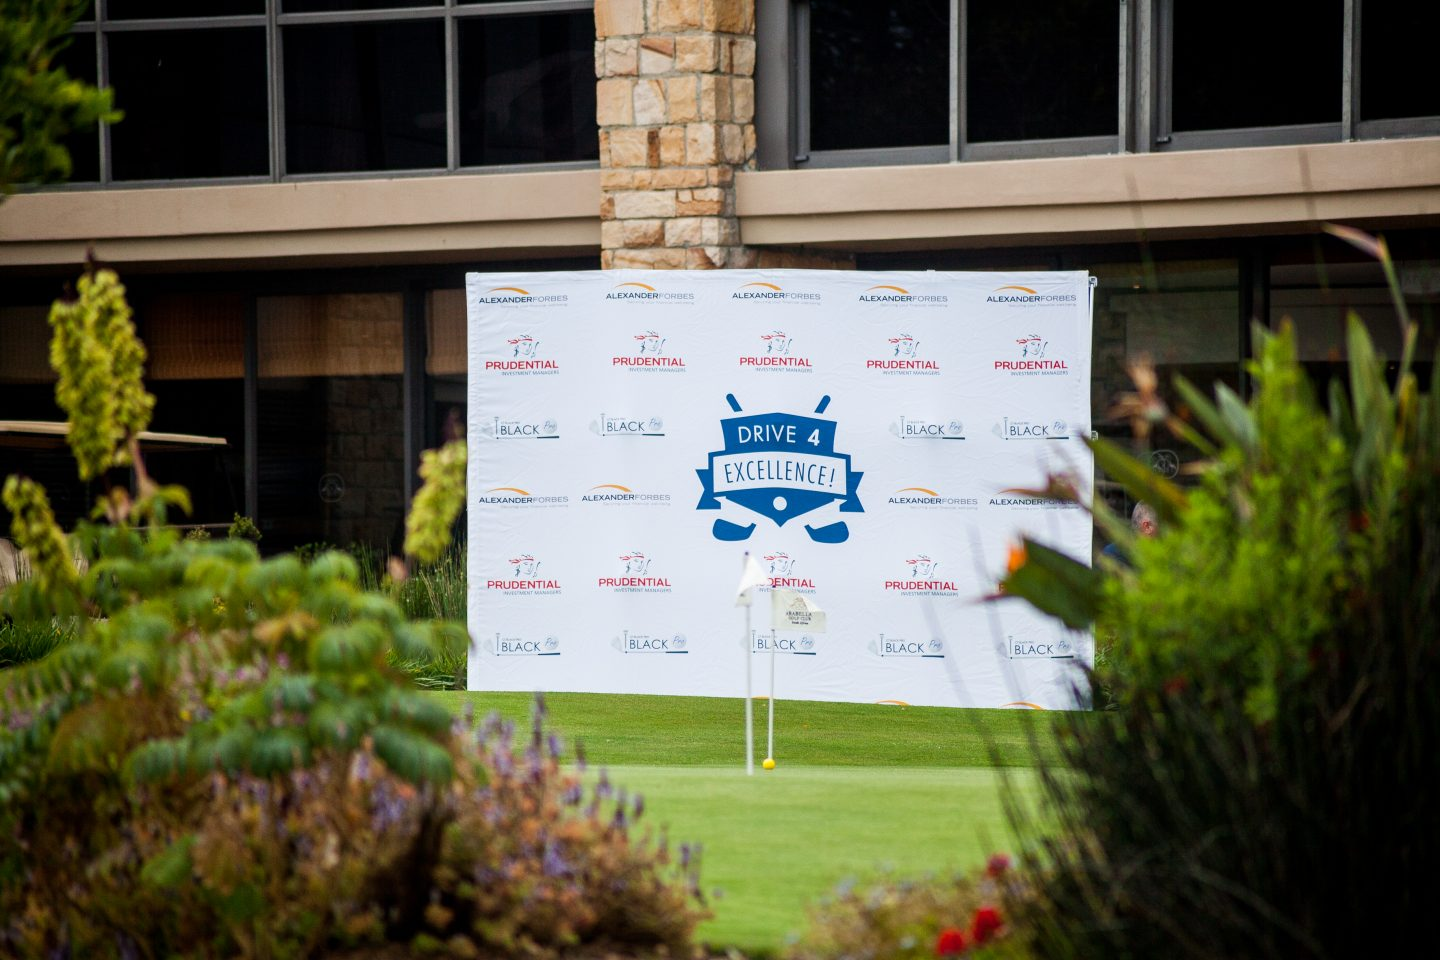 To date, the initiative has raised approximately R2.2 million through five golf charity events.